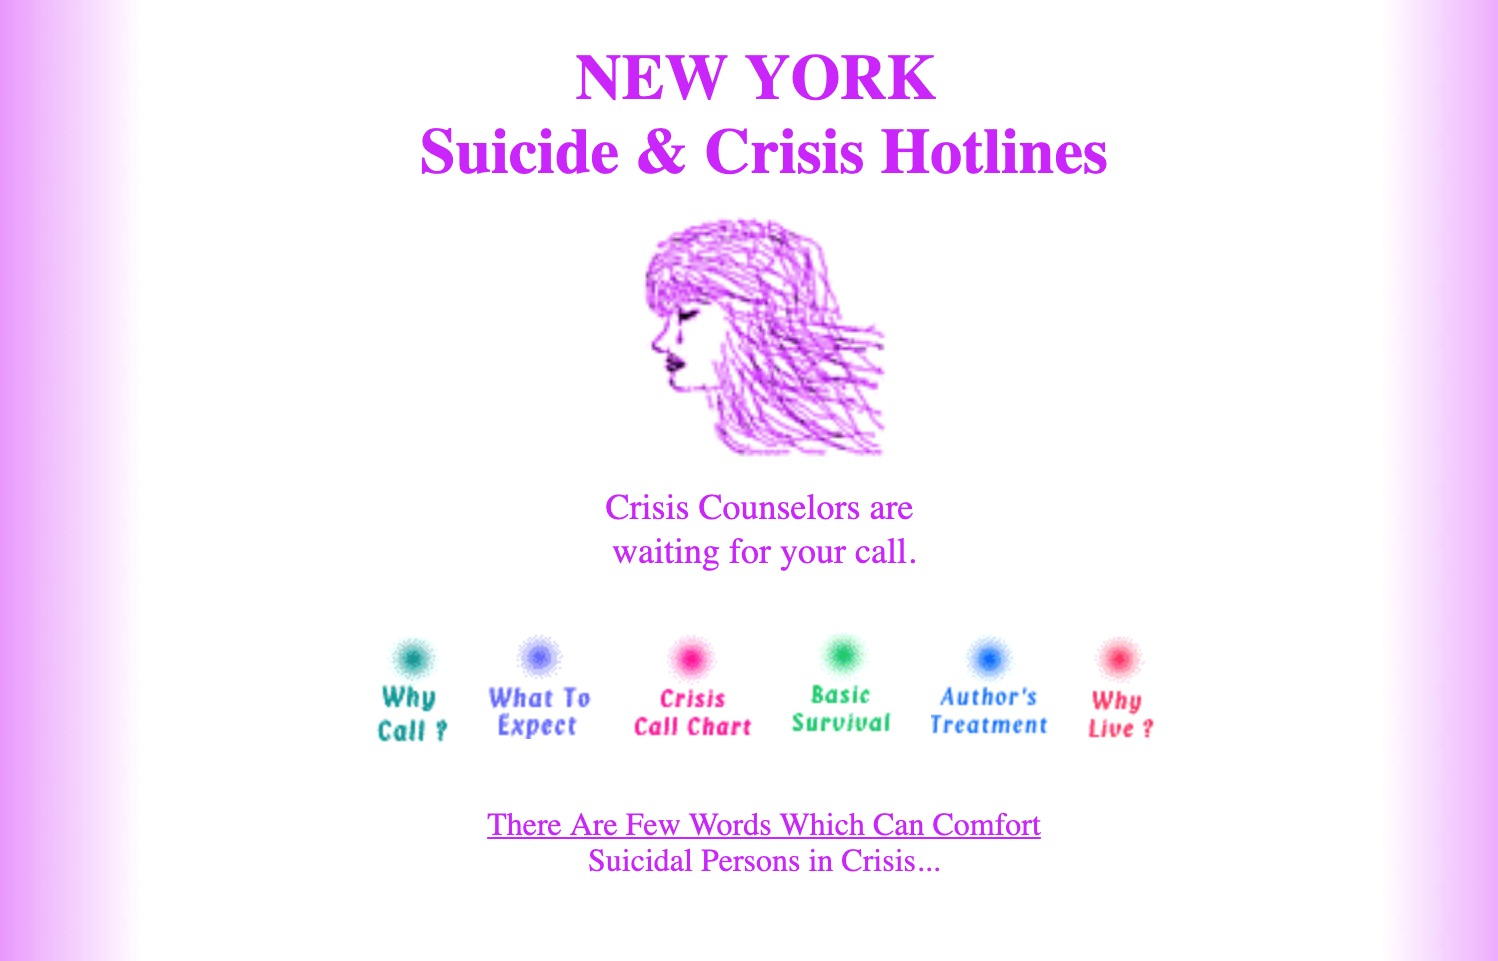 New York crisis hotlines - New York has several hotlines available 24 hours a day, 365 days a year. Many are county-specific. If you live in New York City, NYCWell has a talk/text/chat option as well as coping tips and a resource directory.